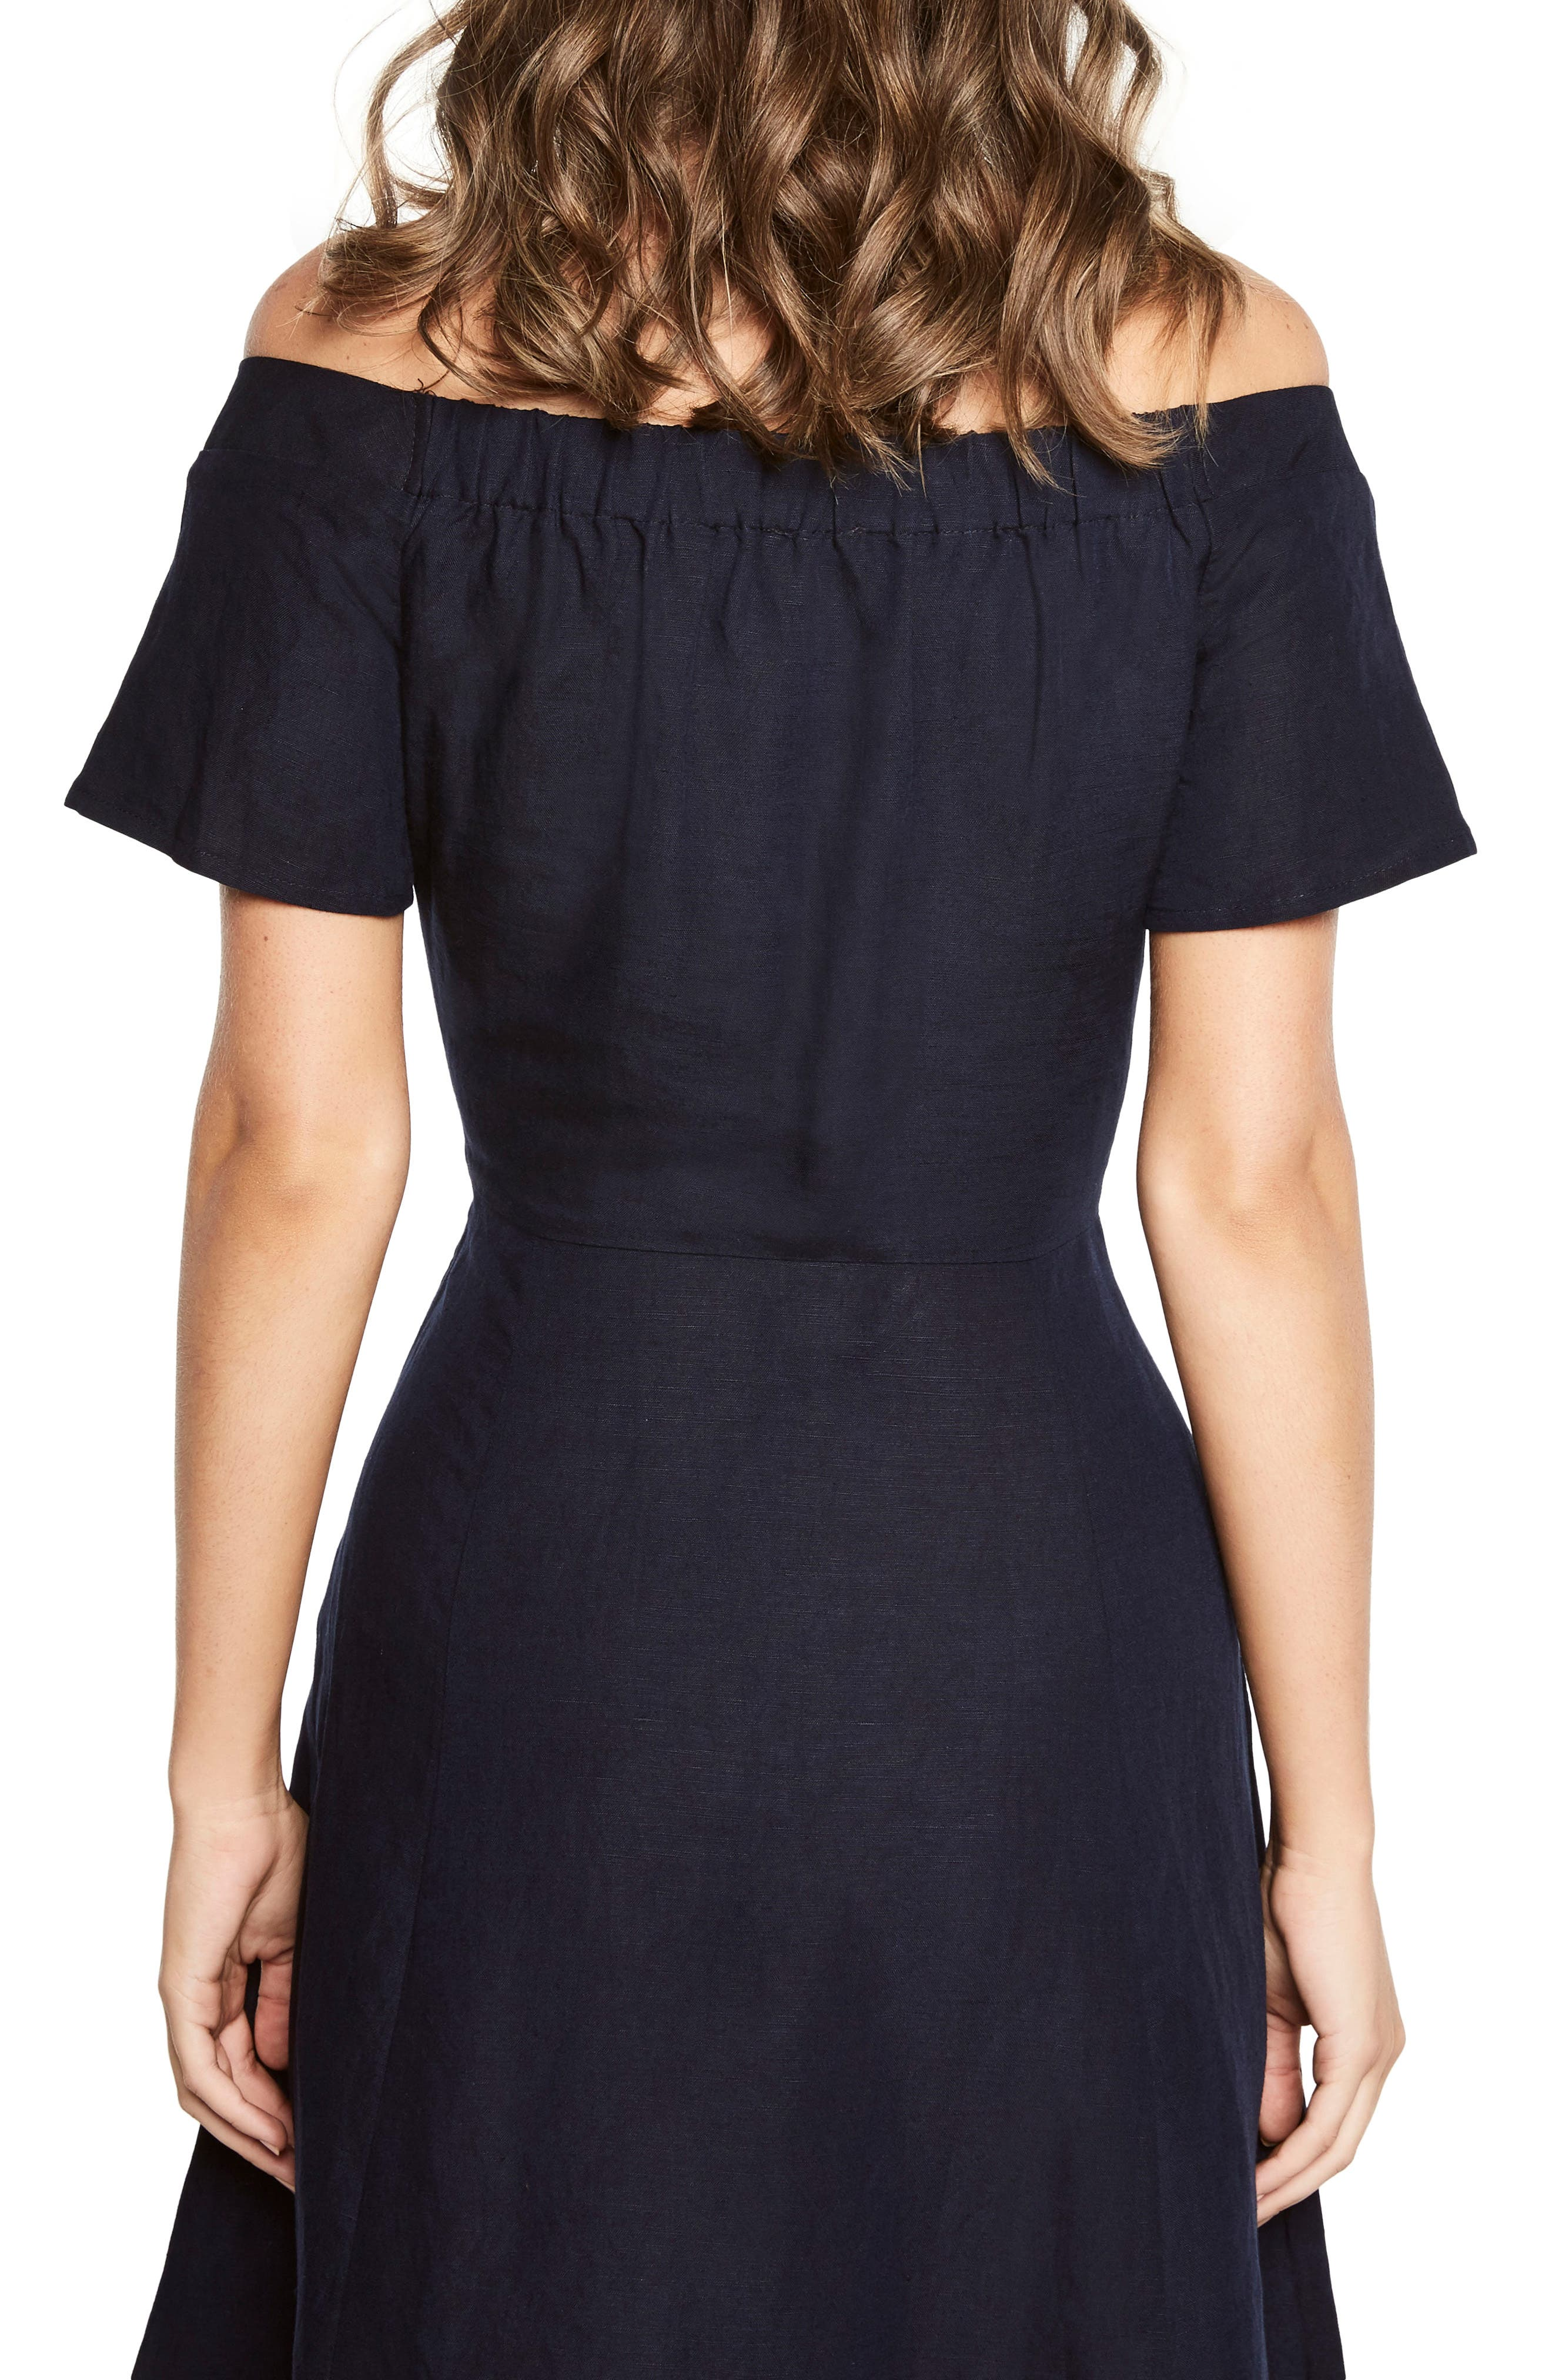 Ophelia Off the Shoulder Dress,                             Alternate thumbnail 2, color,                             Navy